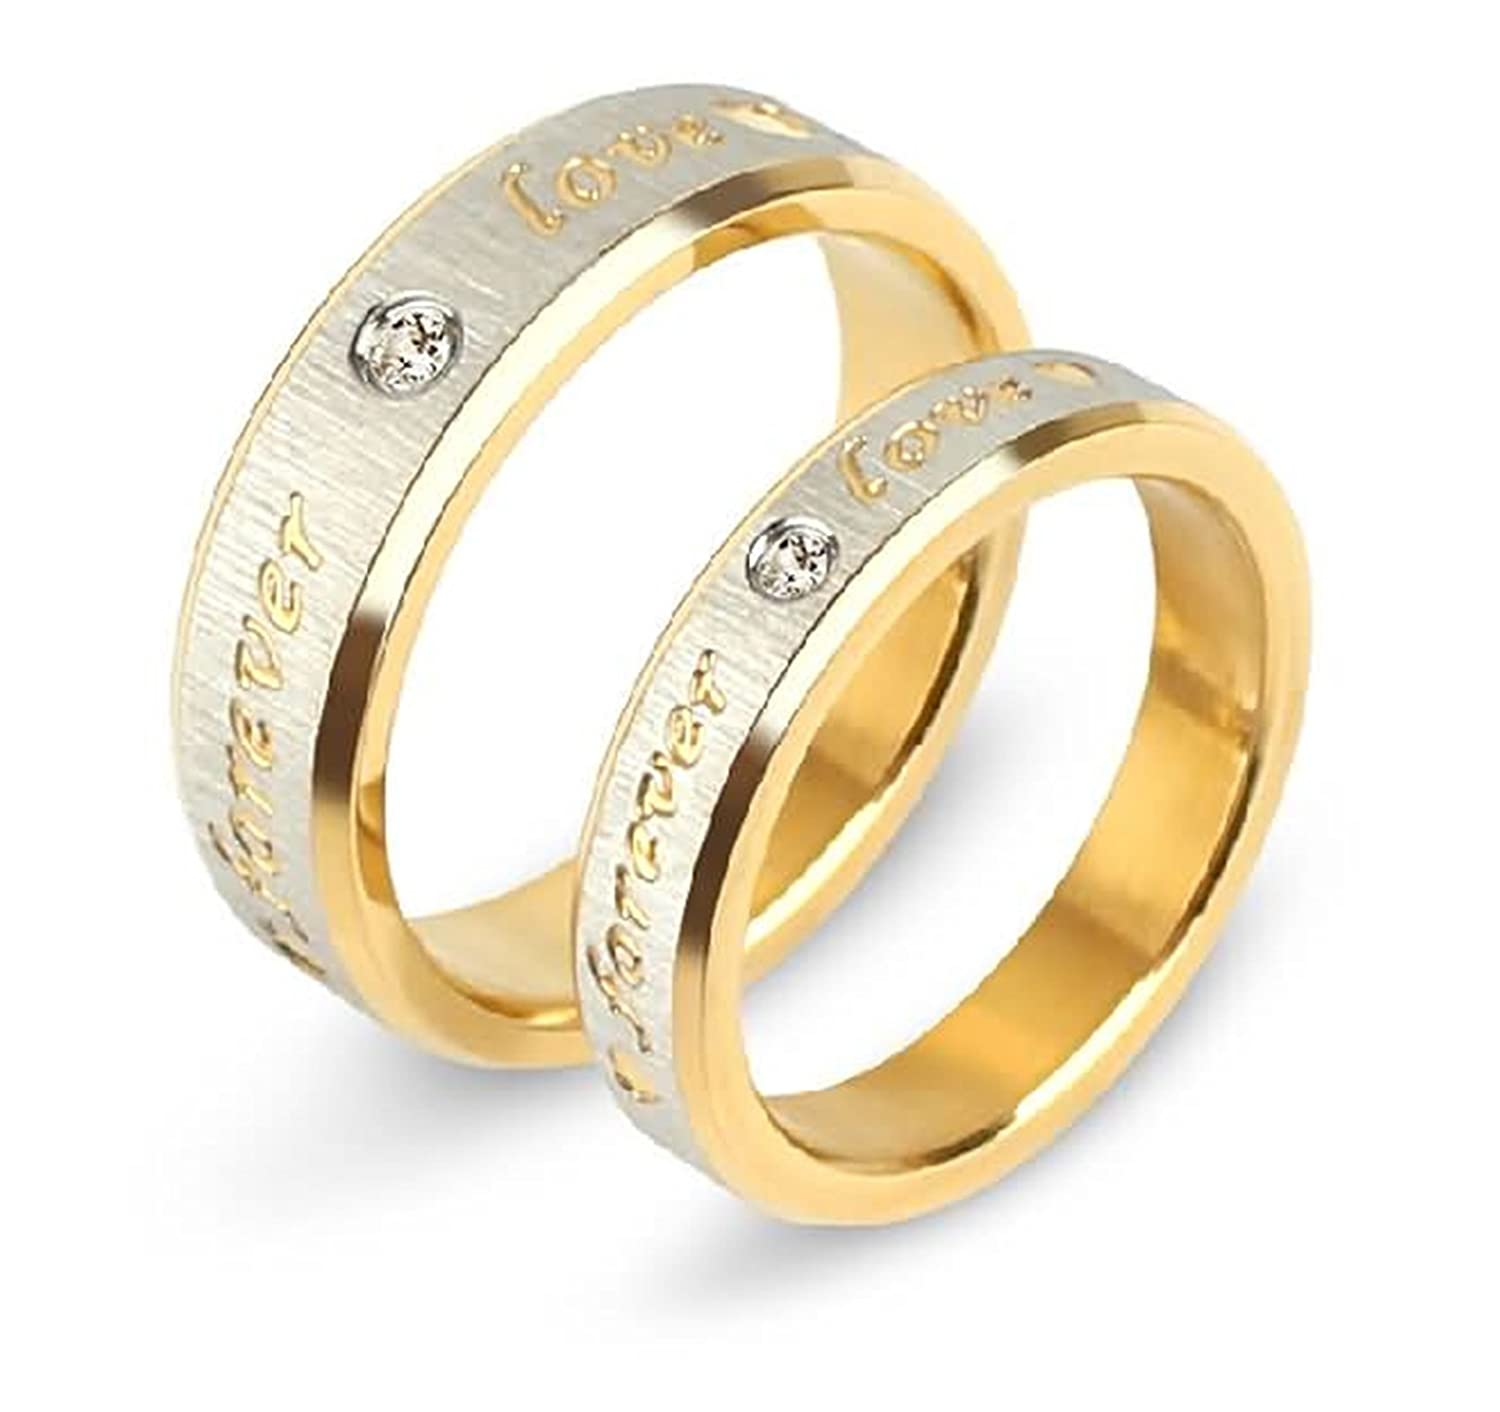 Bishilin 2 PCS Stainless Steel Rings for Couple High Gloss Polished with Engraving